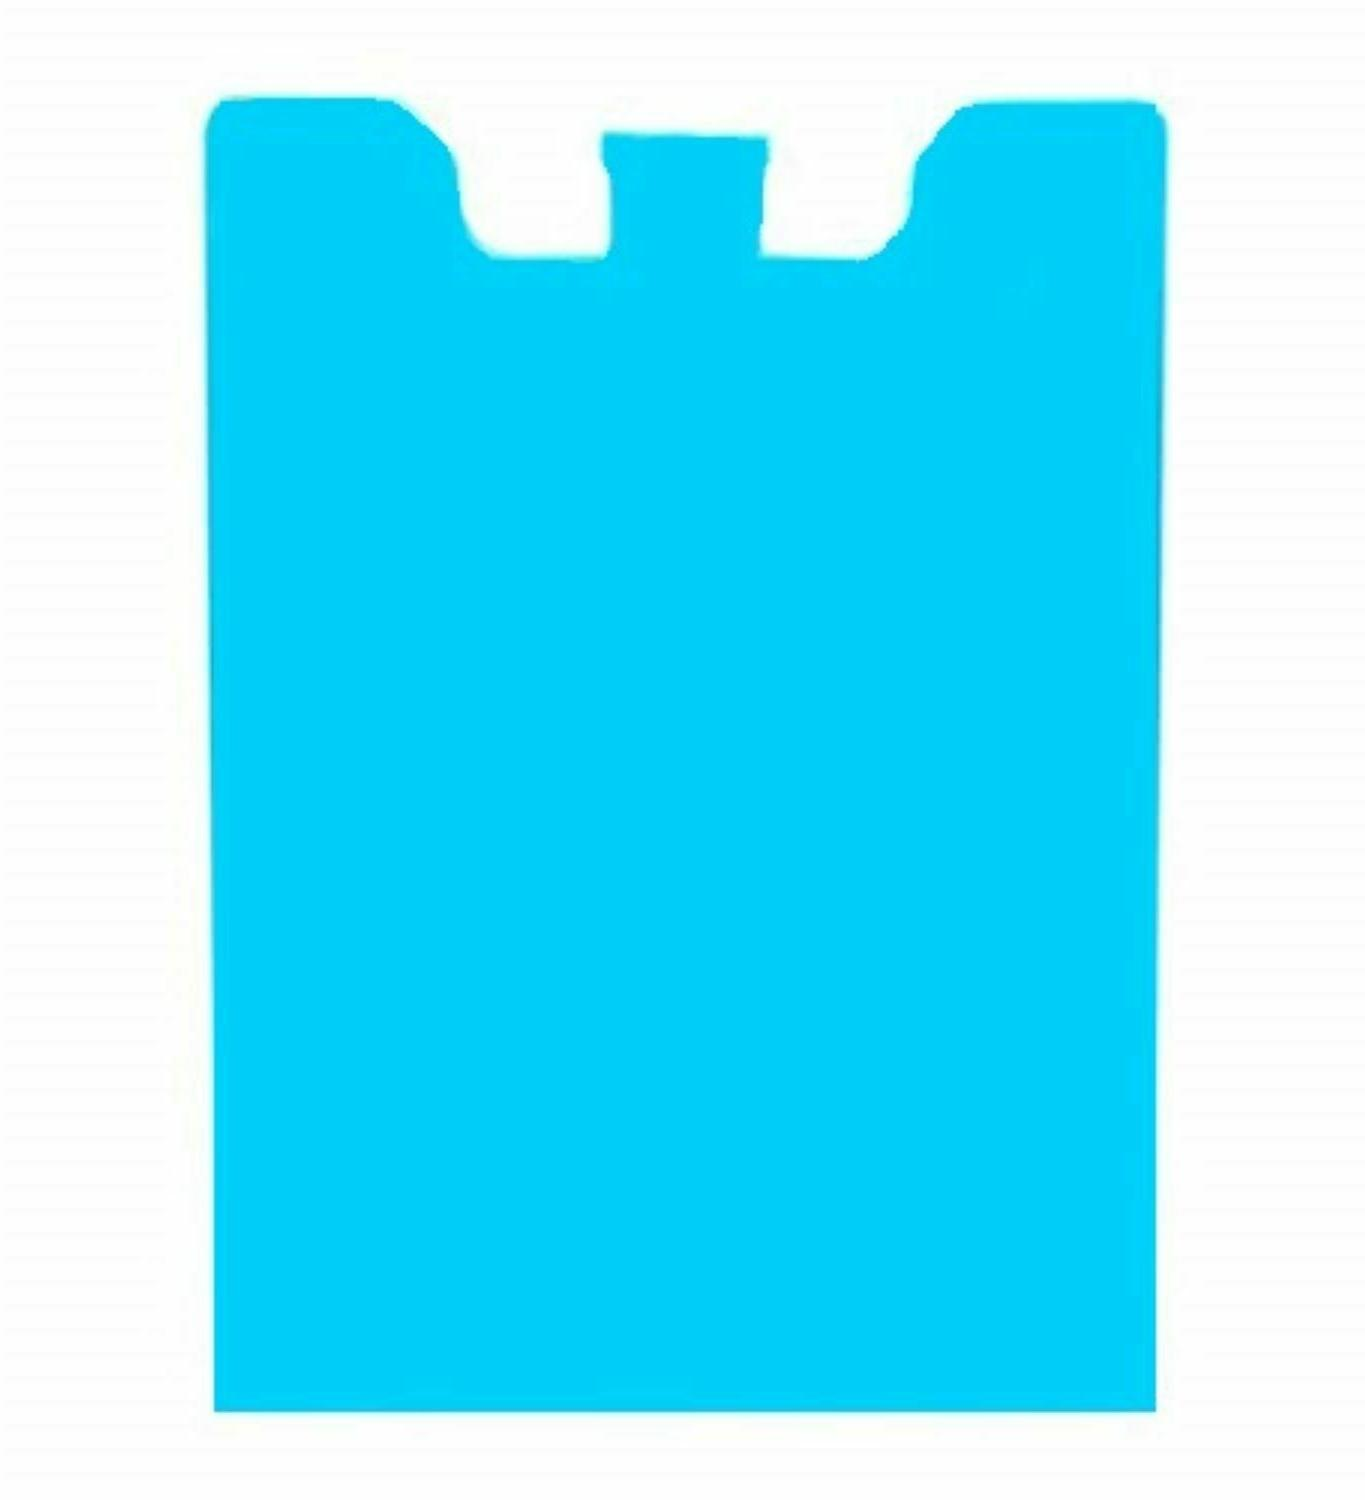 Freeze Reusable Block Ice Packs for Lunch Boxes and Coolers